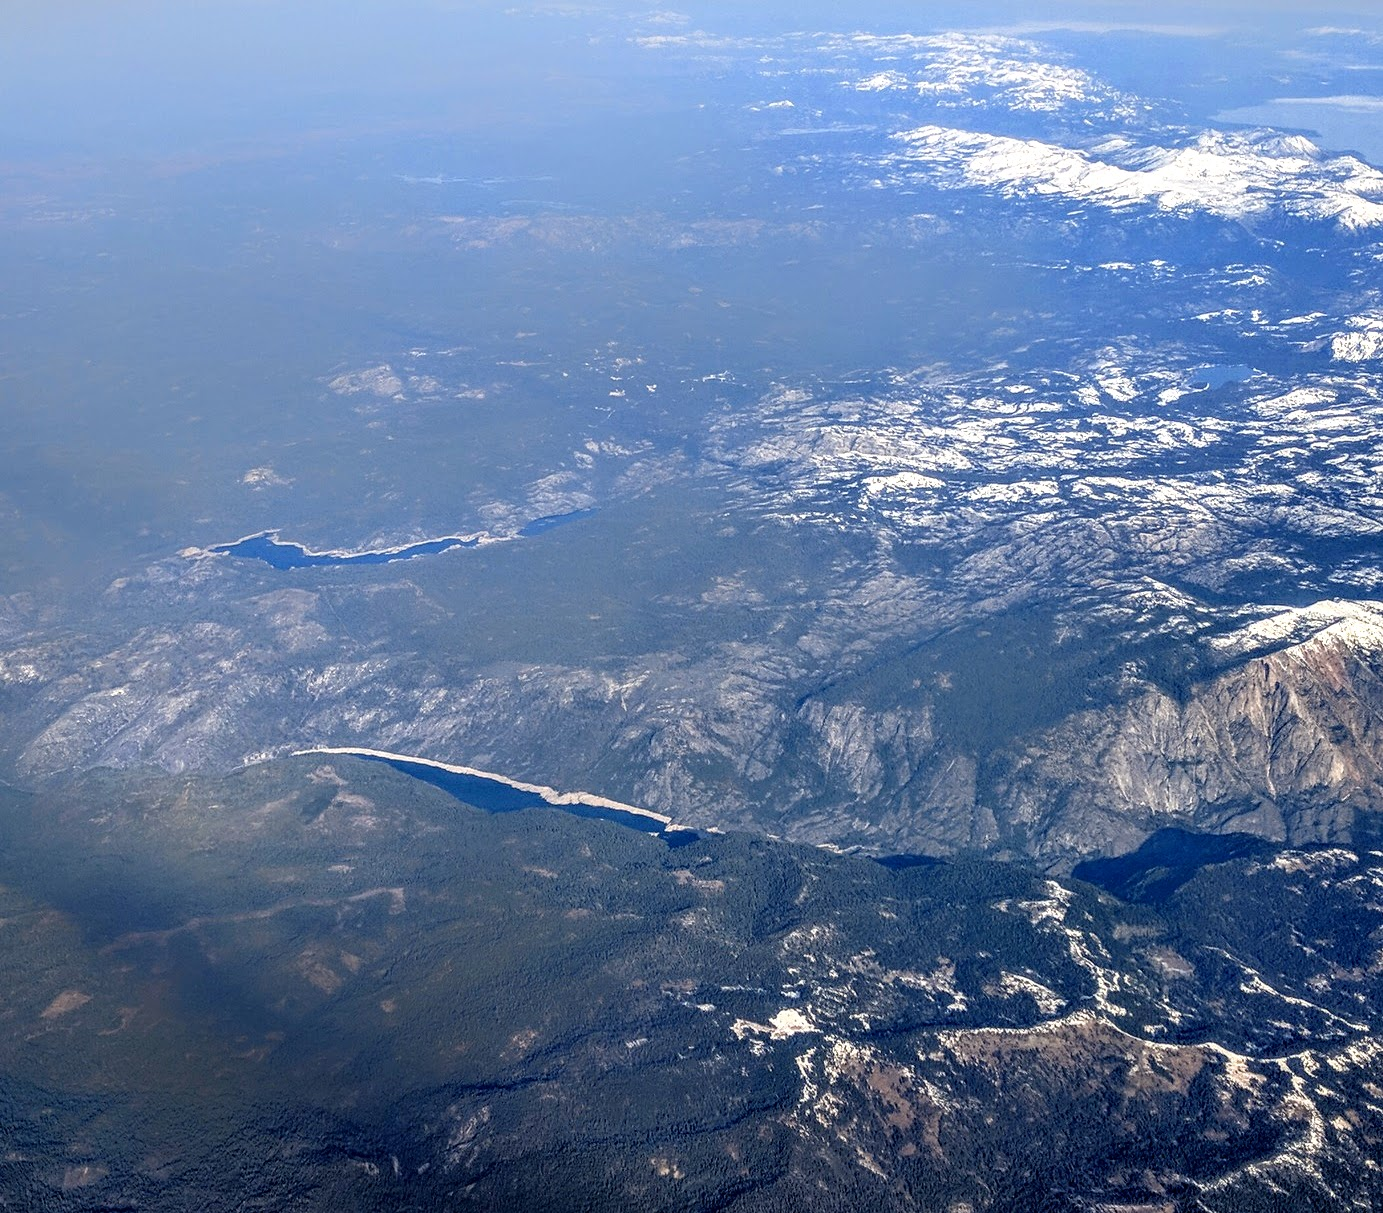 The Salt Springs Reservoir (below), Lower Bear River Reservoir (above  Left), And Bear River Reservoir (above Center) Are Visible In Aerial View  From The ...